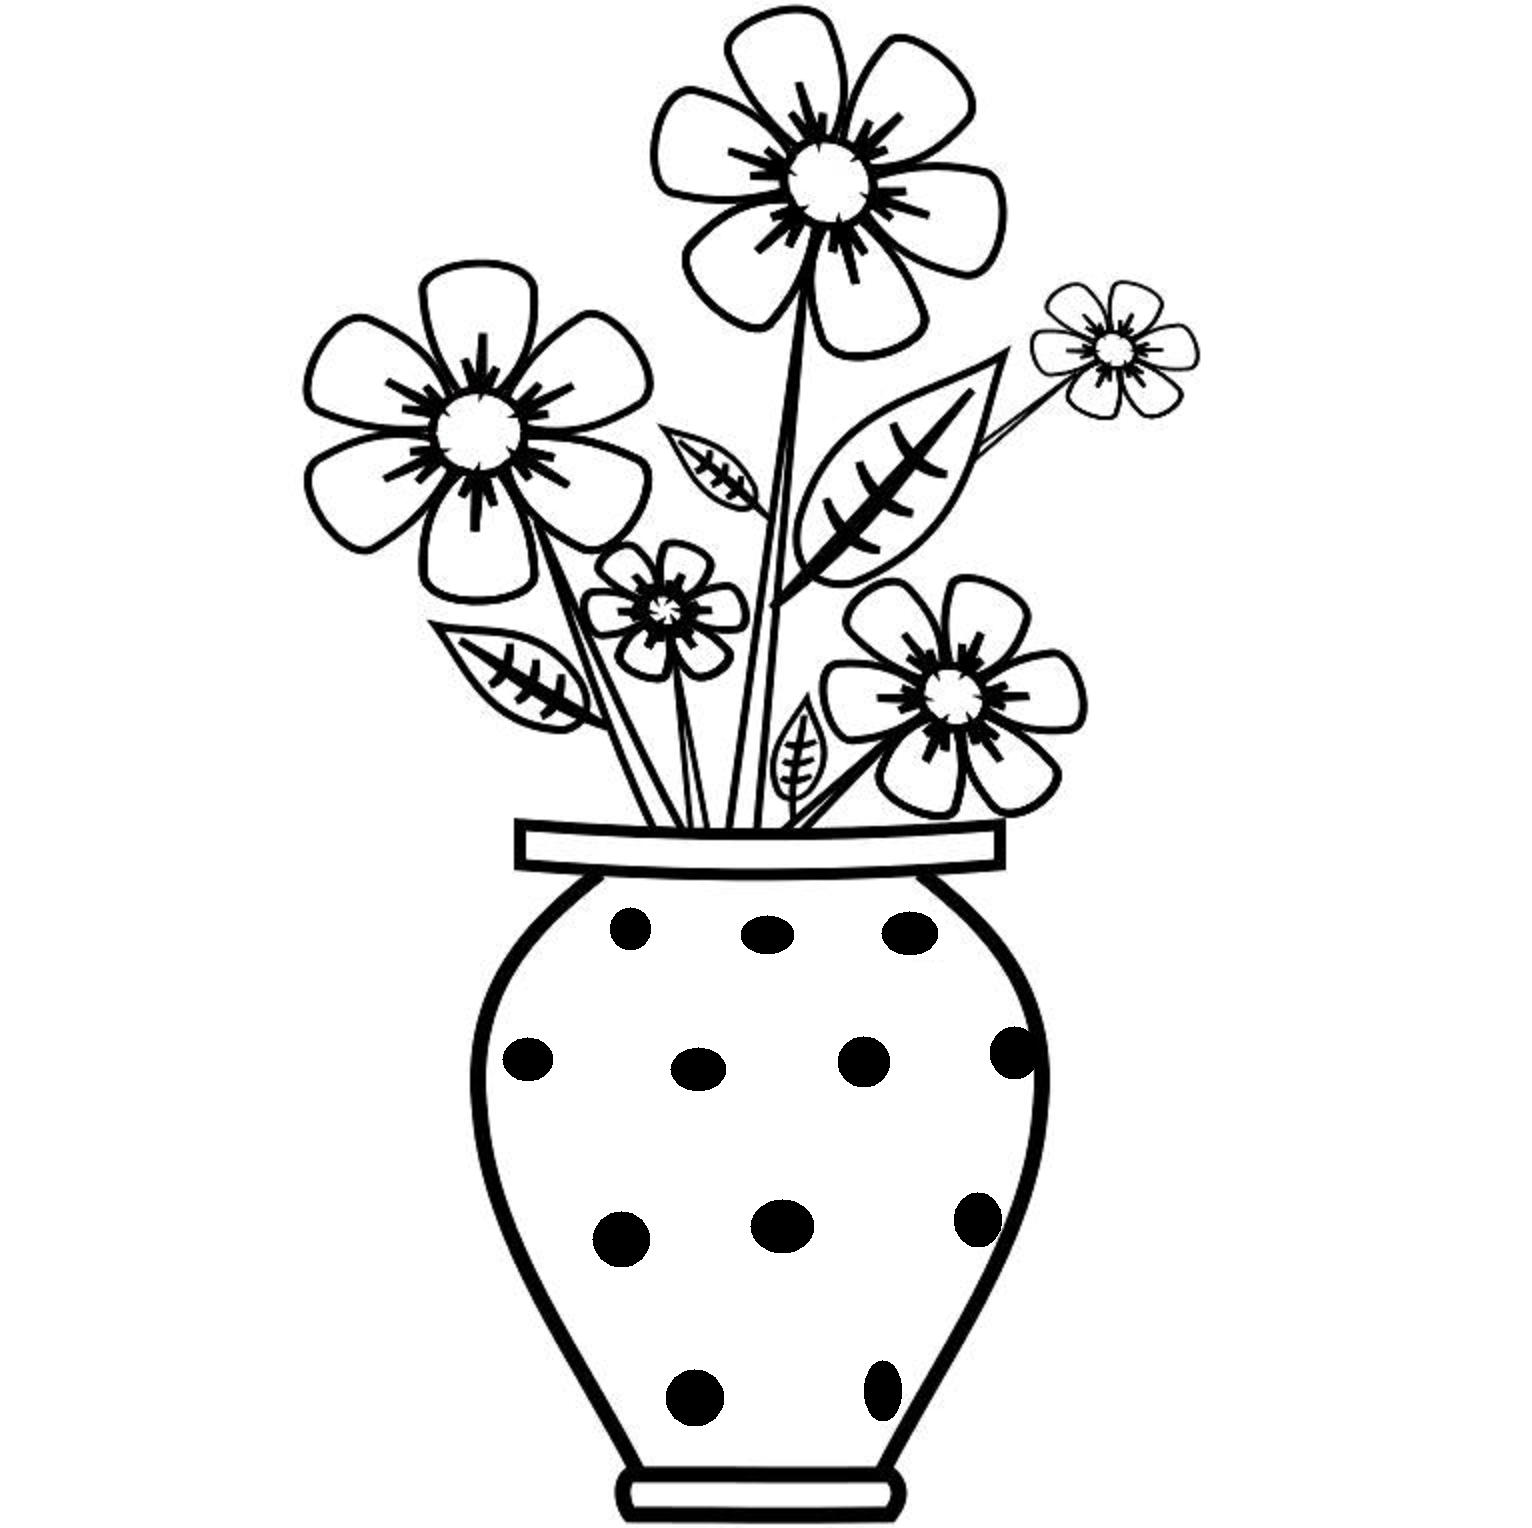 1532x1528 Gallery Flowers With Vase Drawing,